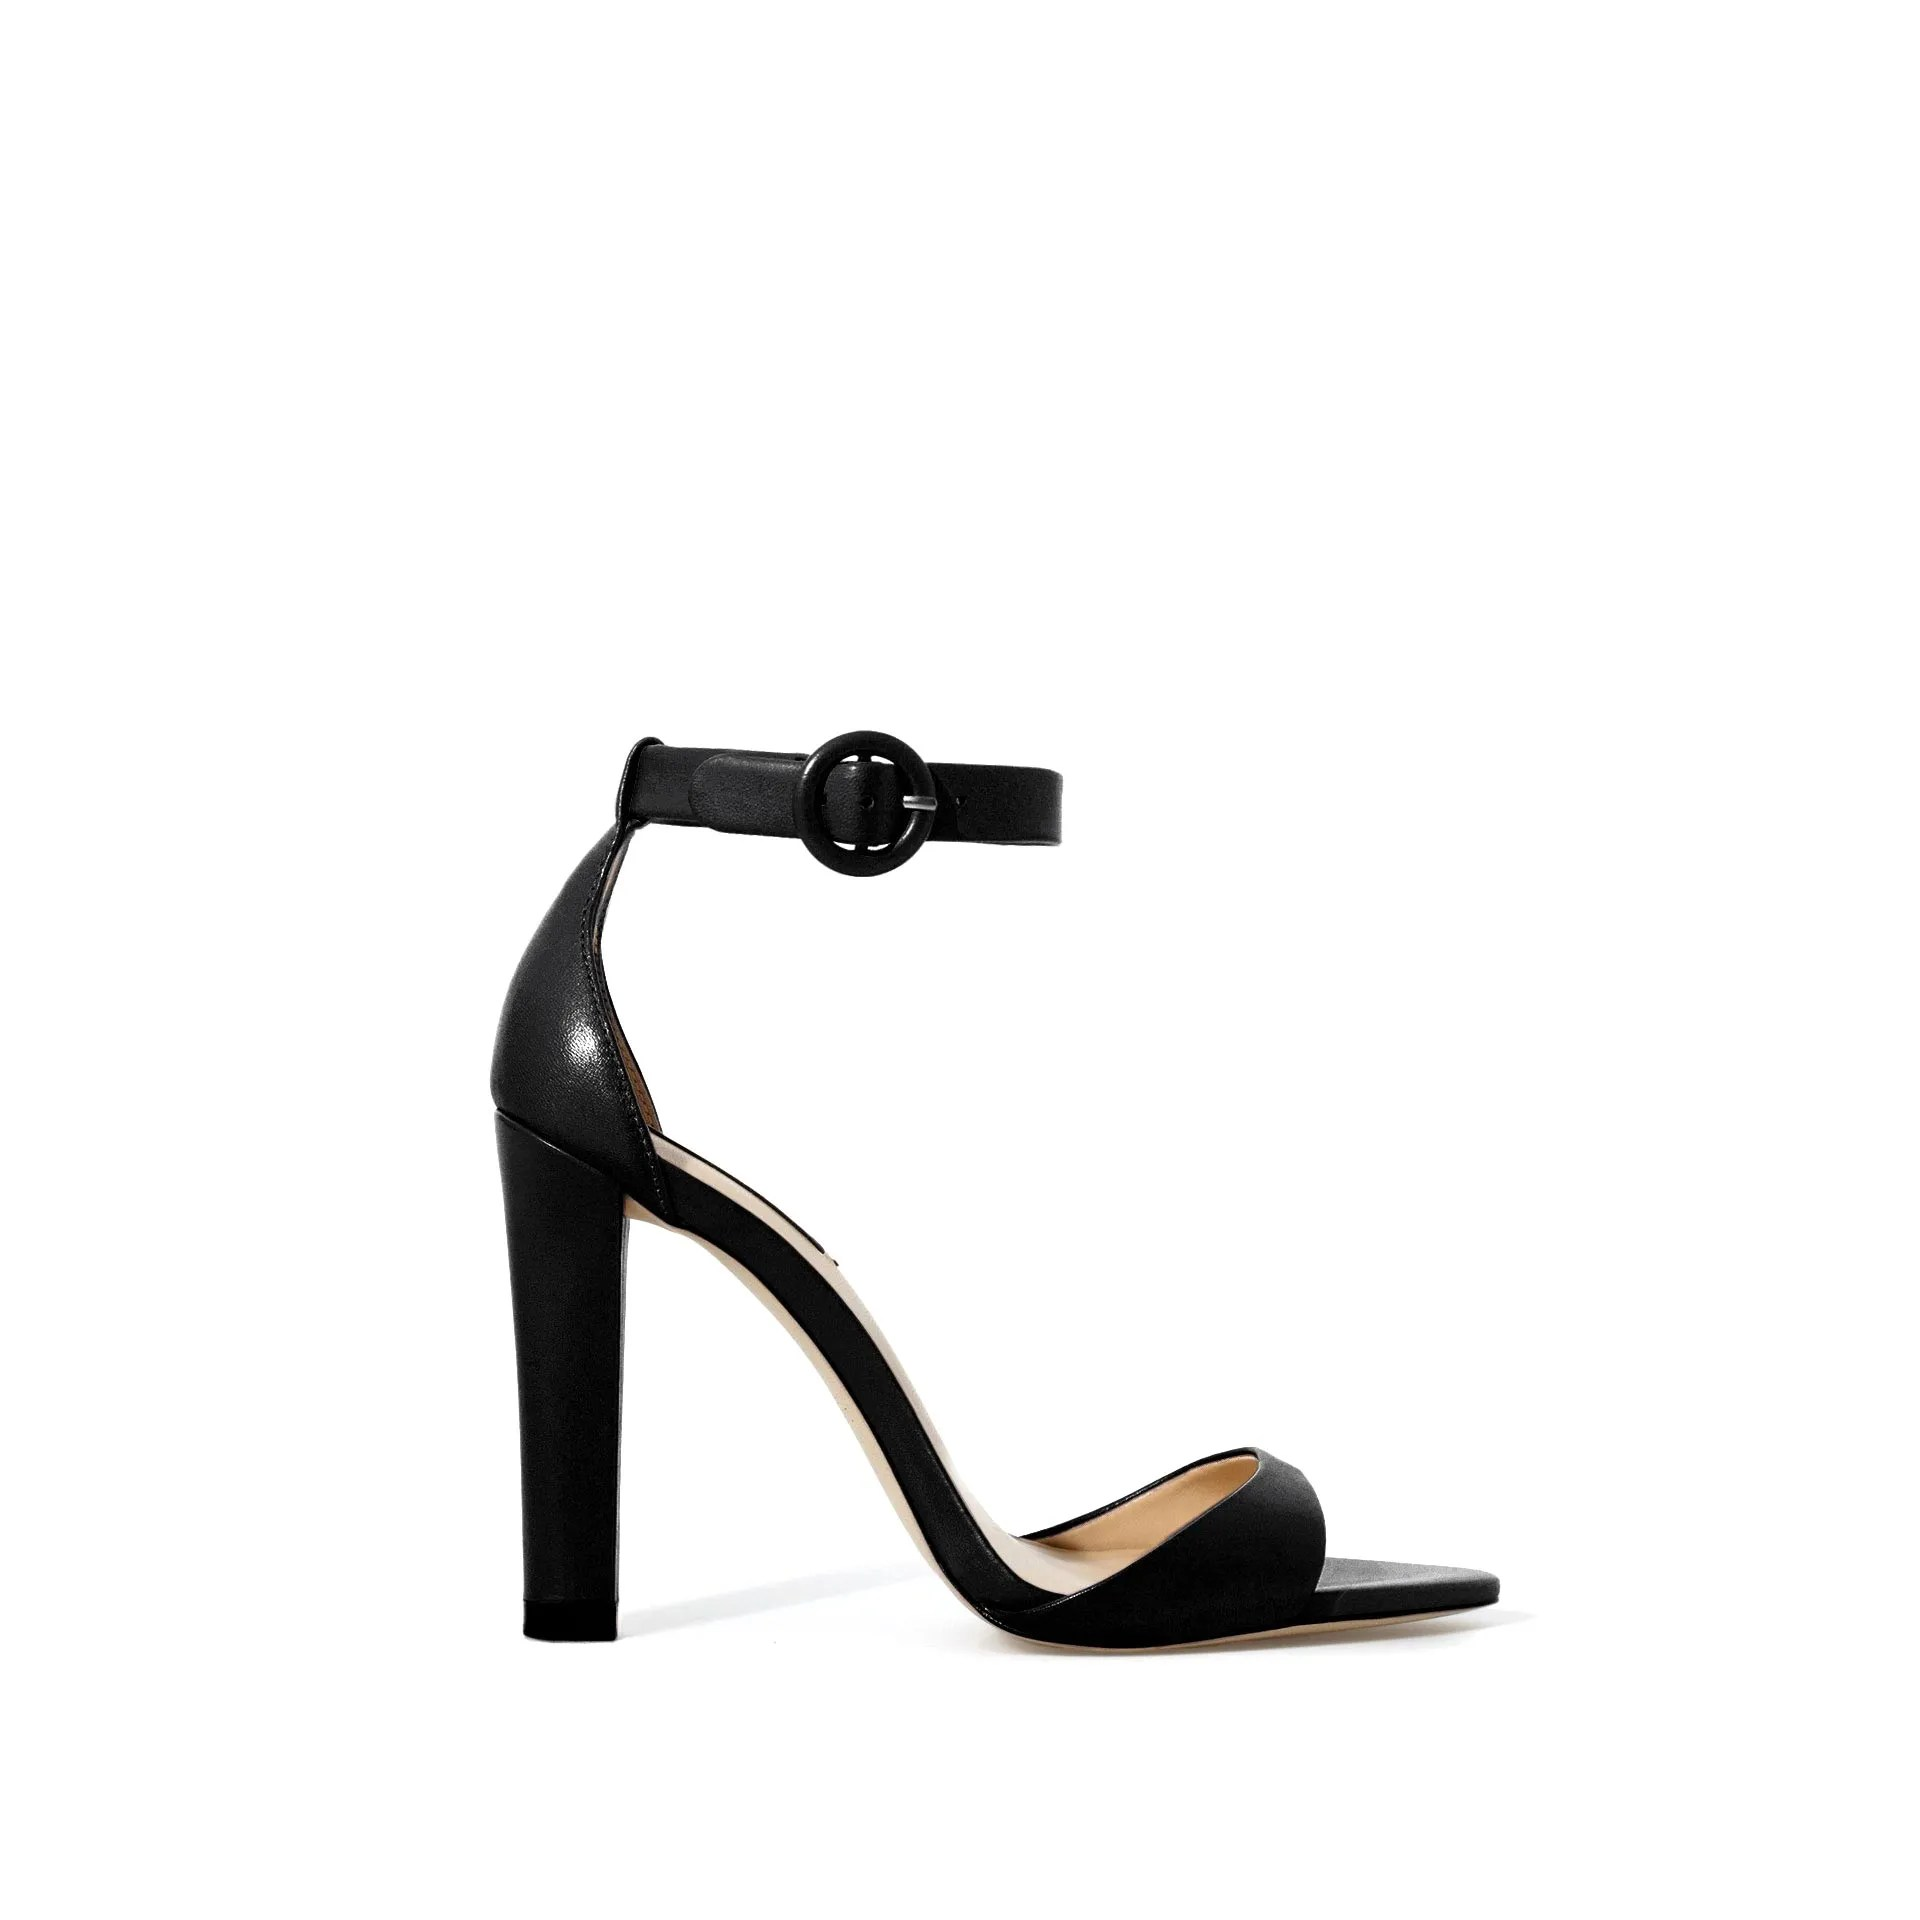 The Stacked Sandal